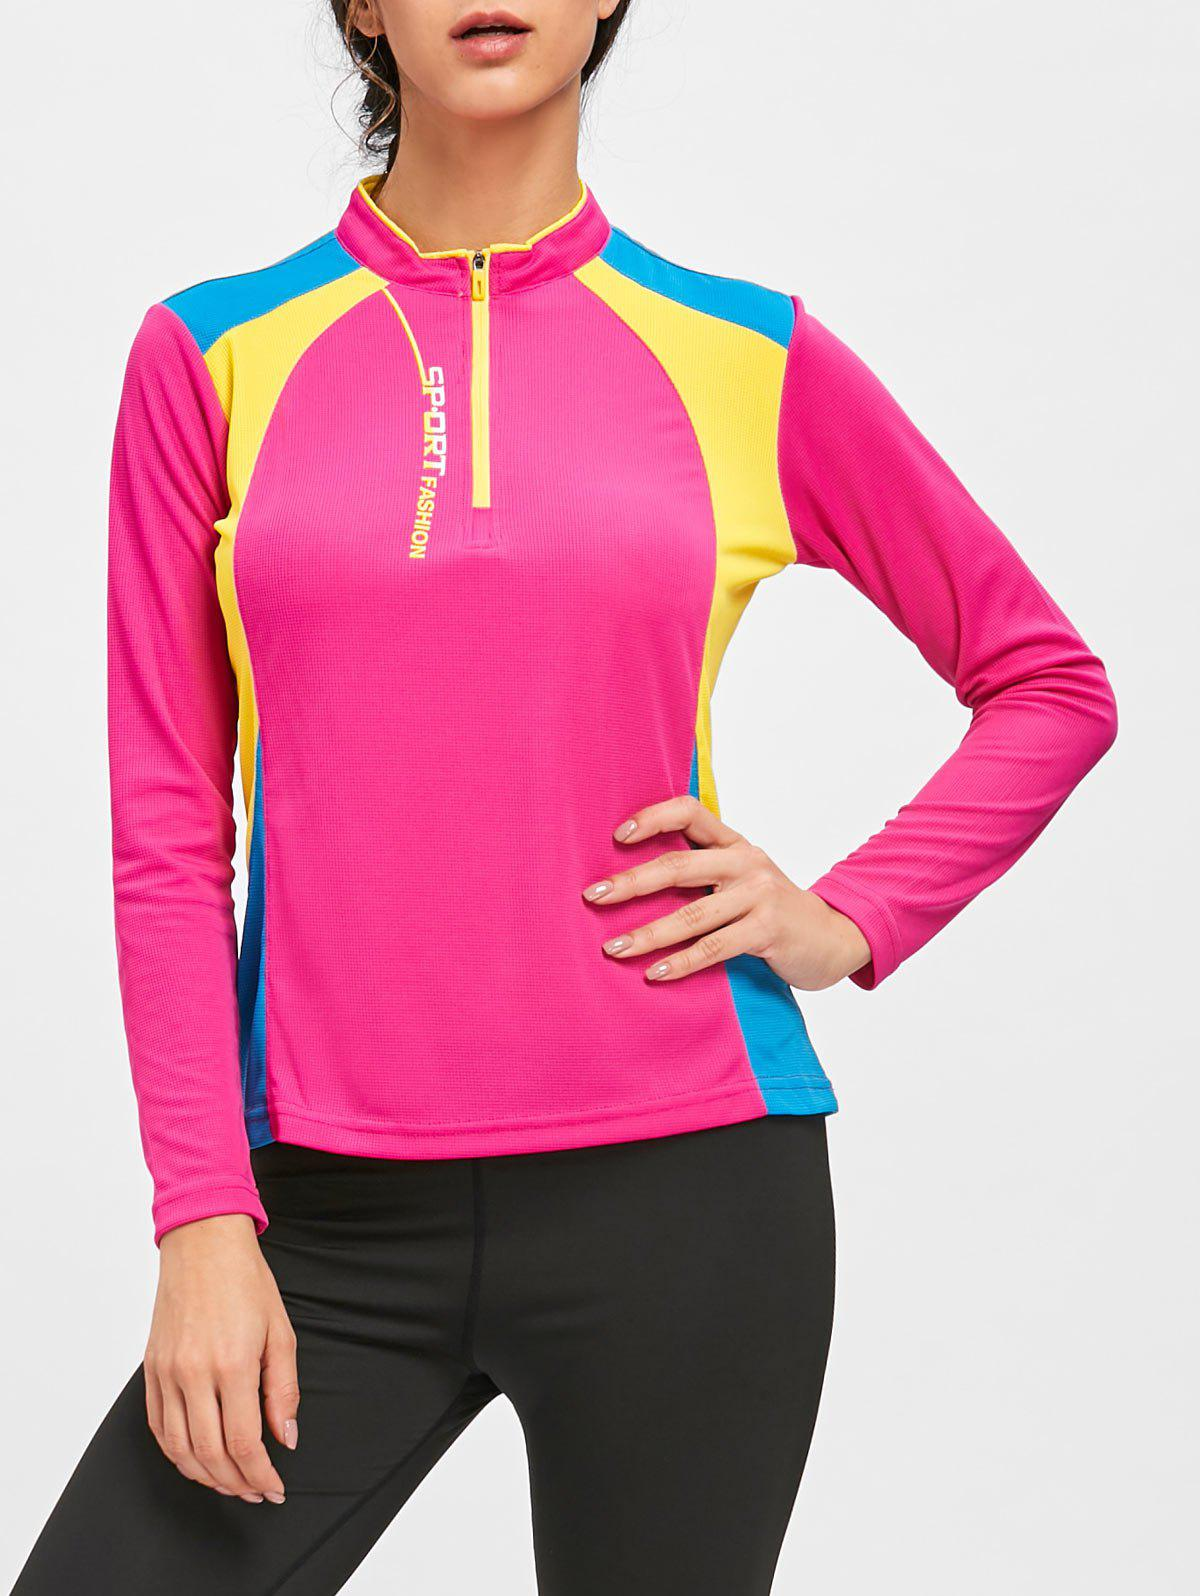 Unique Color Black Half Zip Cycling T-shirt